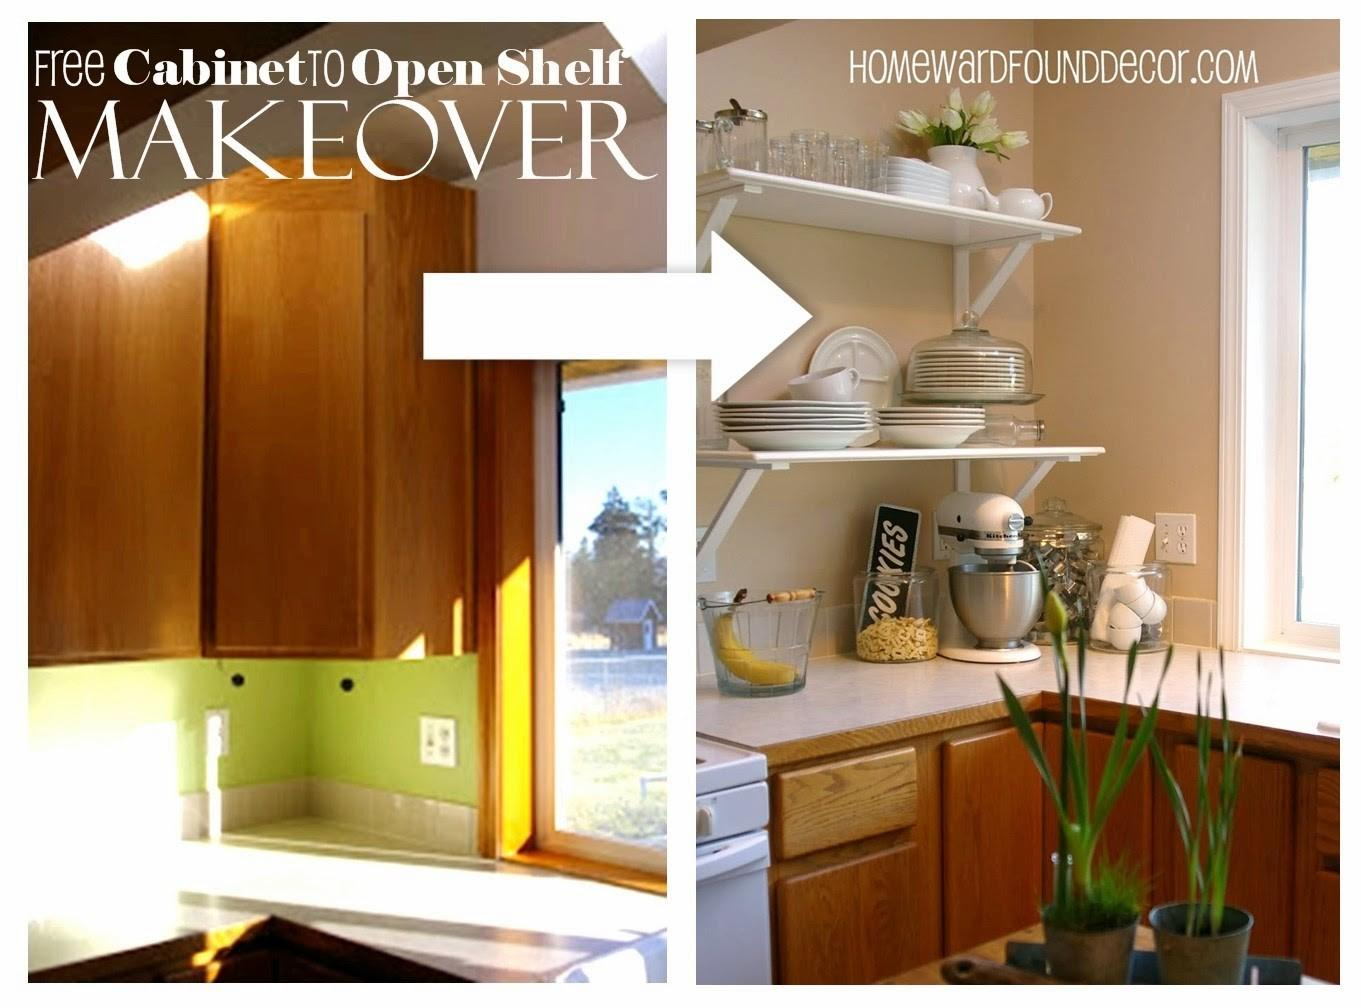 Diy Kitchen Cabinet Shelf Makeoverhomewardfounddecor